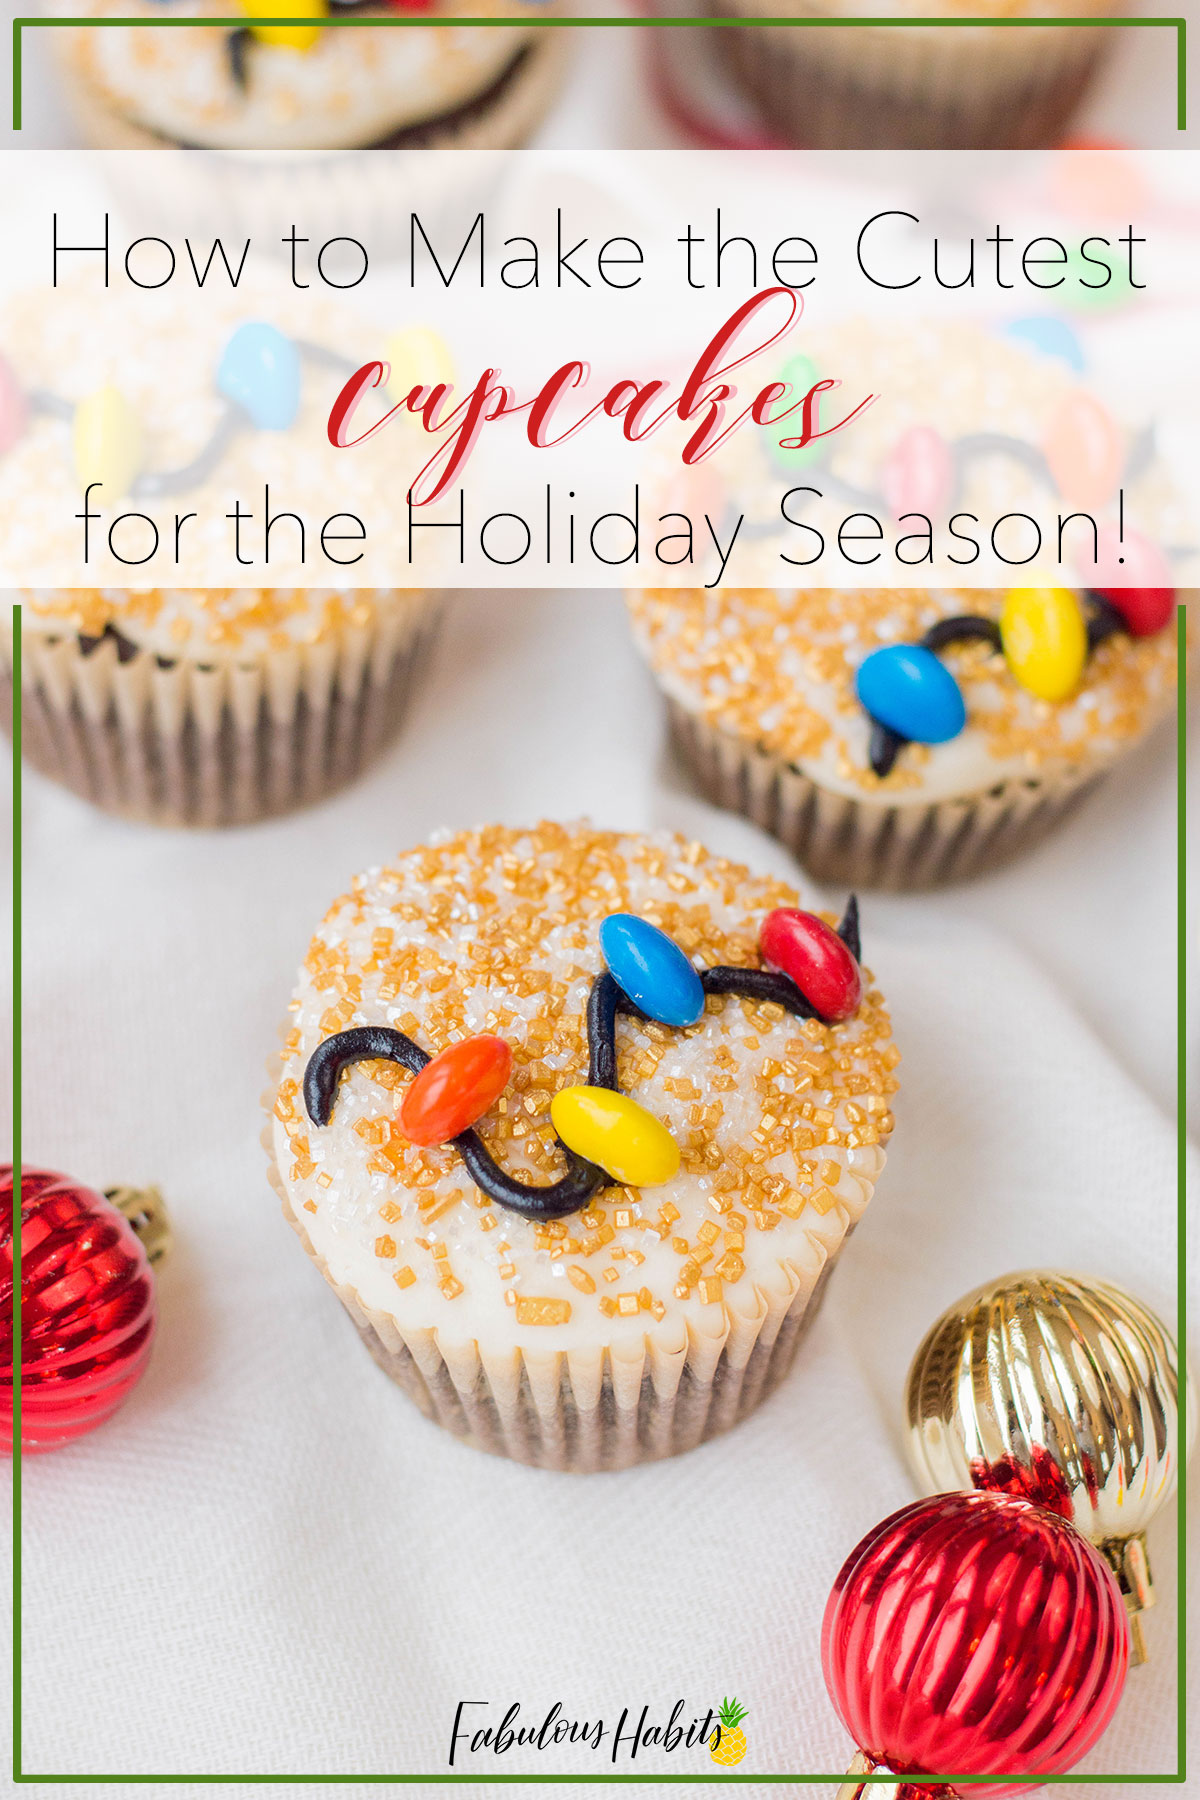 Looking for an easy Christmas dessert to bake during this crazy time of the year? Why not try these super cute Christmas Light Cupcakes?! #holidaybaking #holidaycupcakes